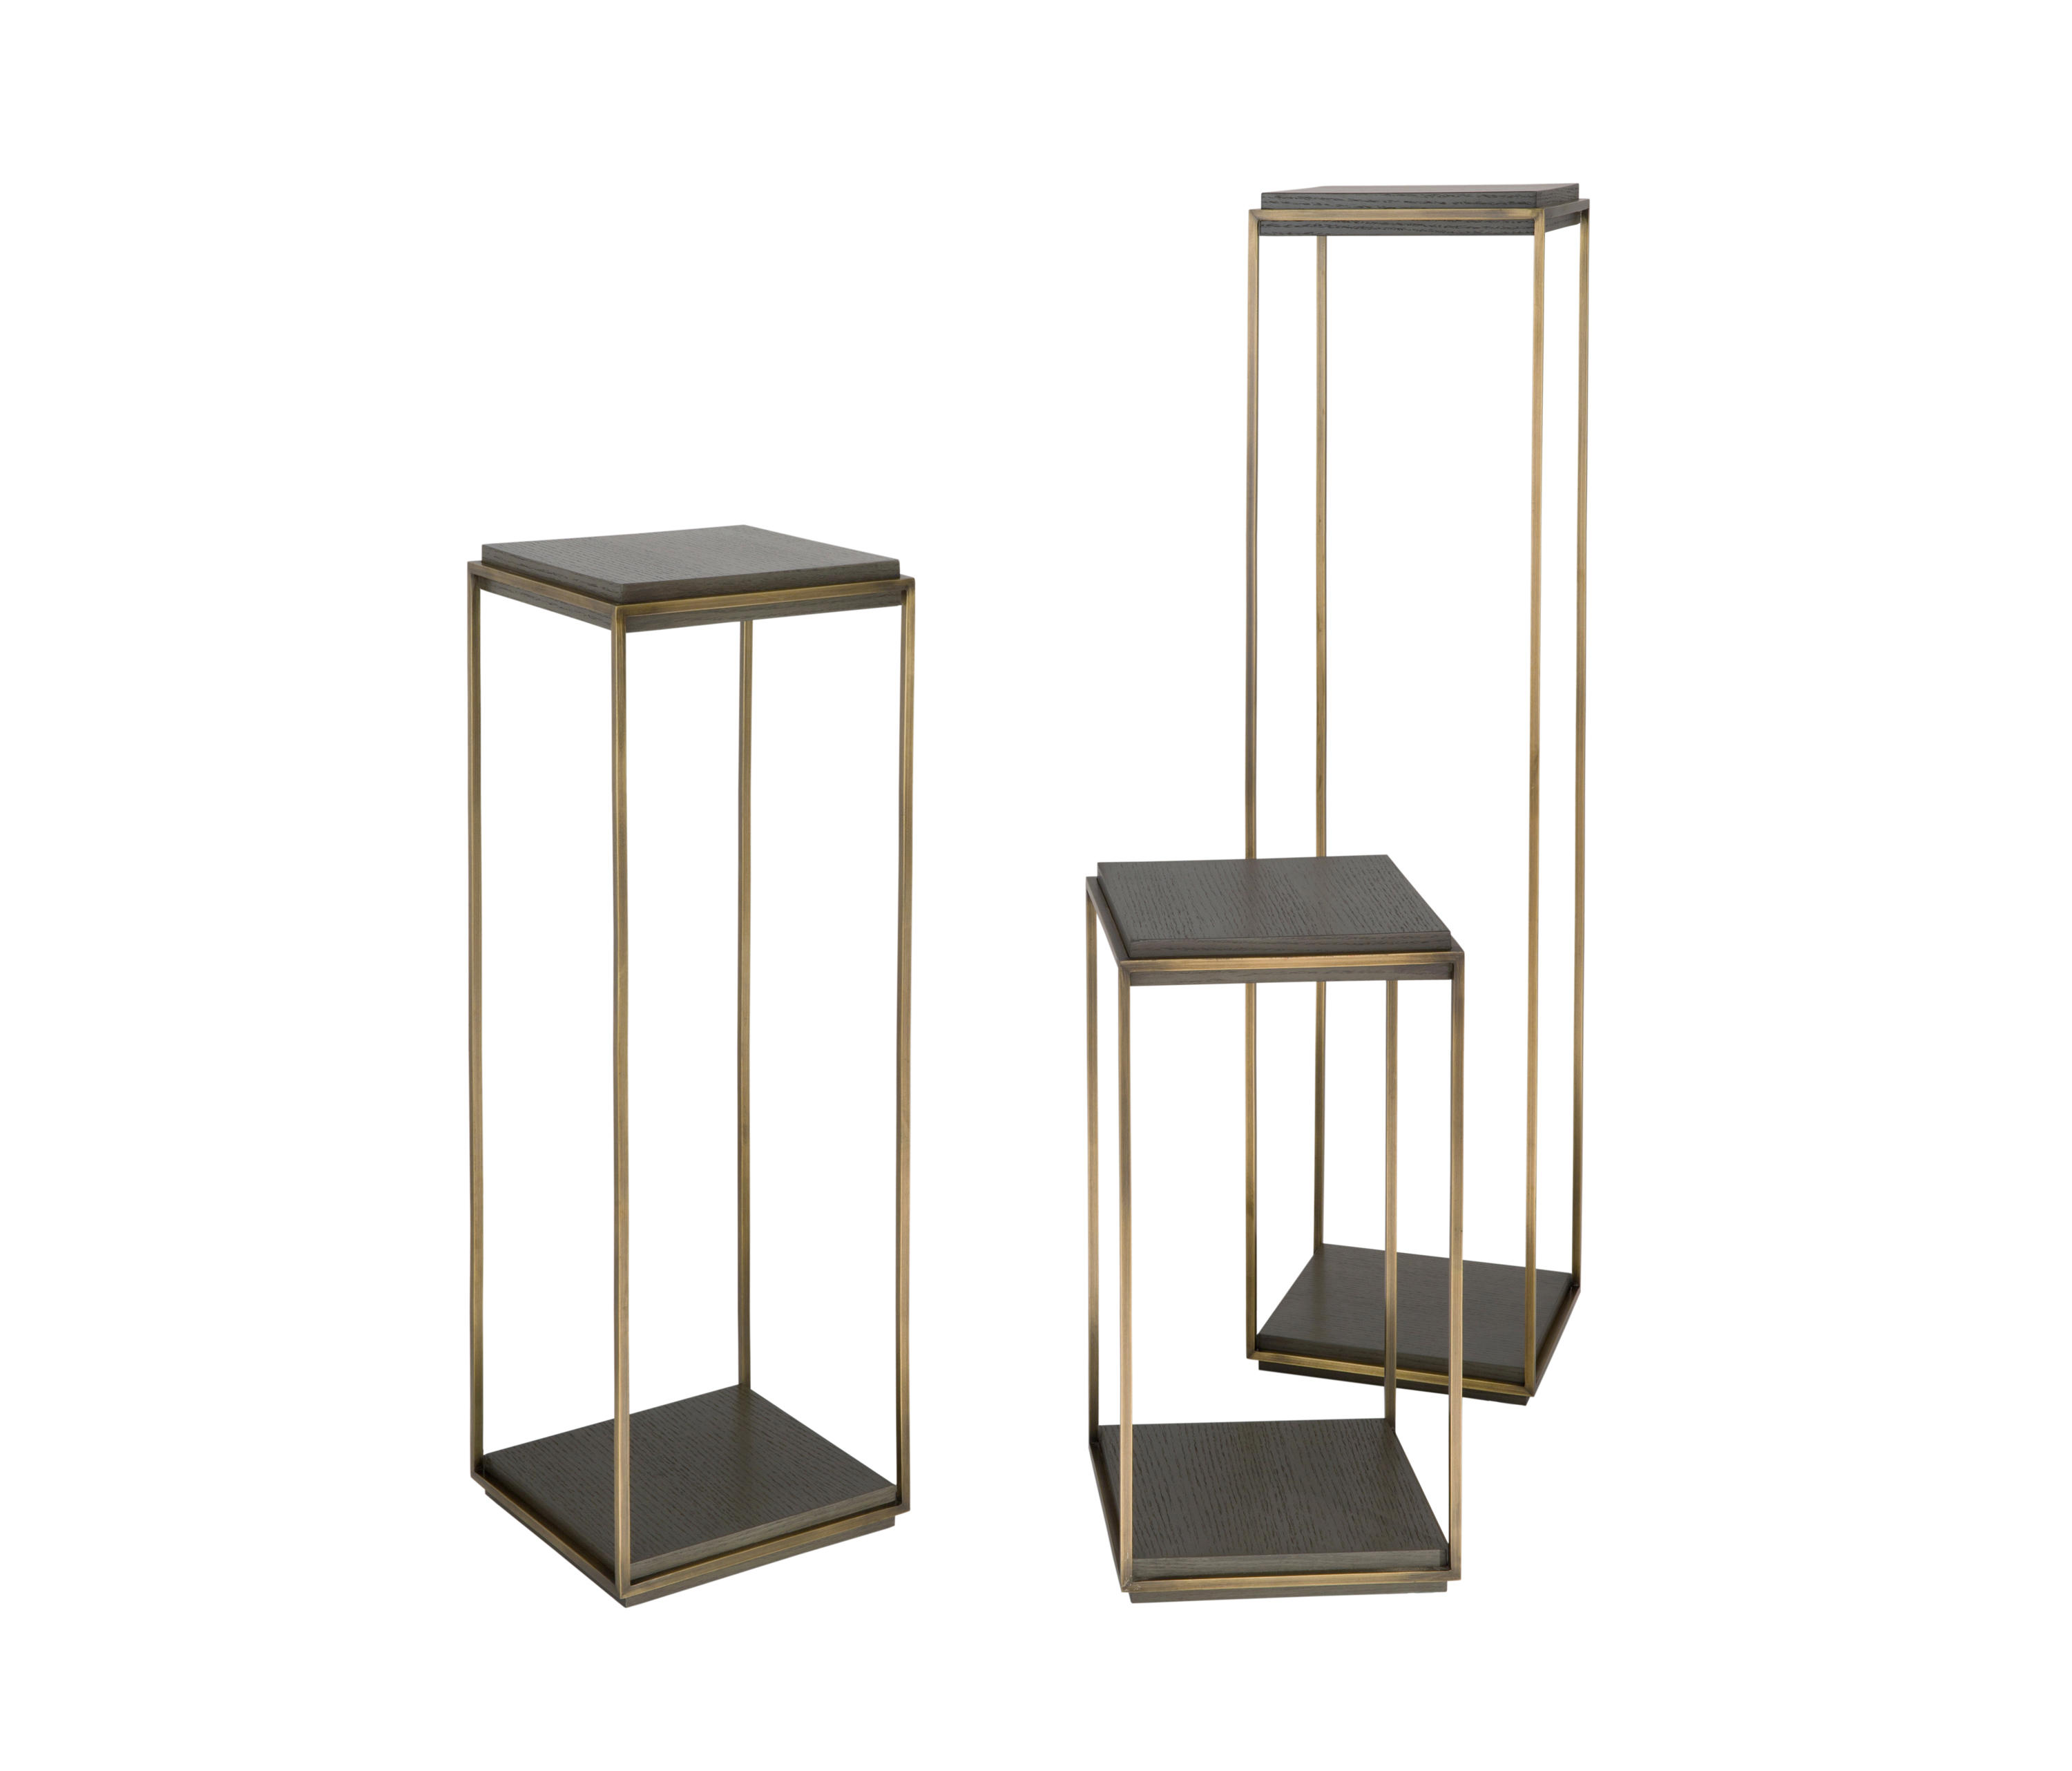 FOND FLOWER STAND Plant holders Plant stands from HC28